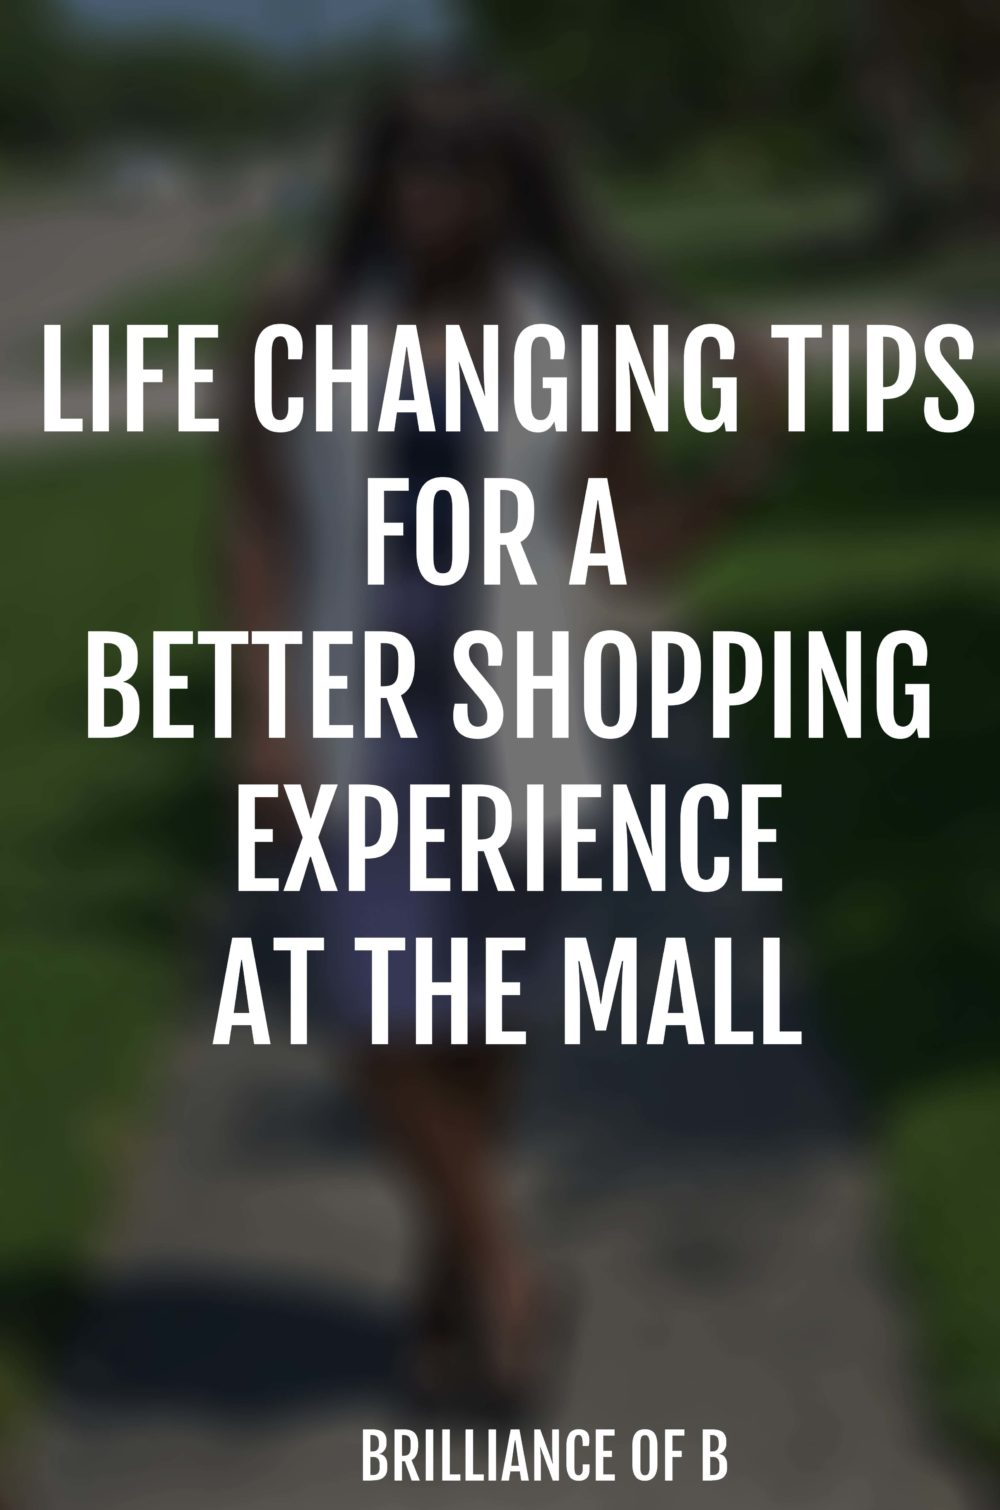 Tips for shopping at the mall